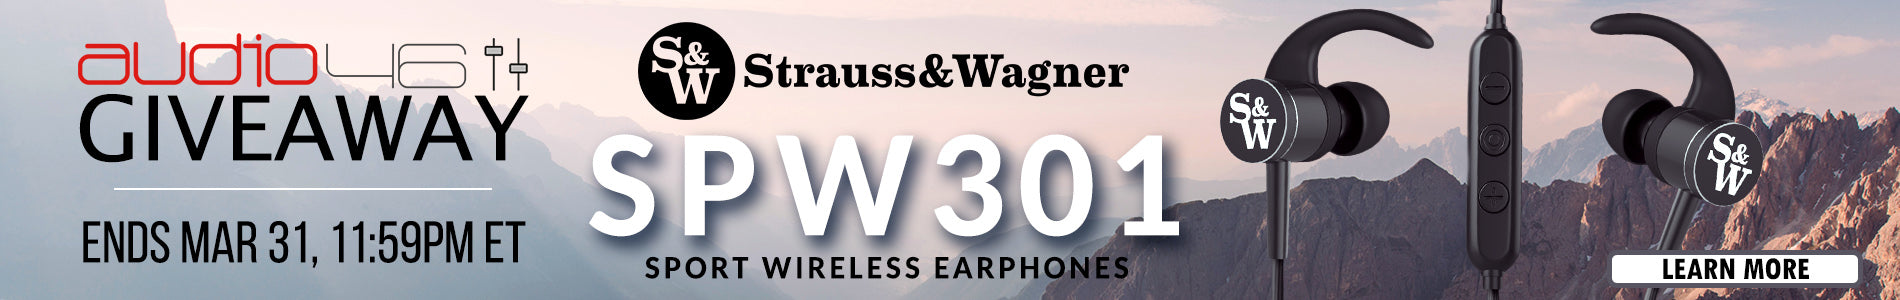 Audio46 Giveaway: Strauss & Wagner SPW301 Sport Wireless Earphones, ends March 31st, 11:59pm ET - click to learn more